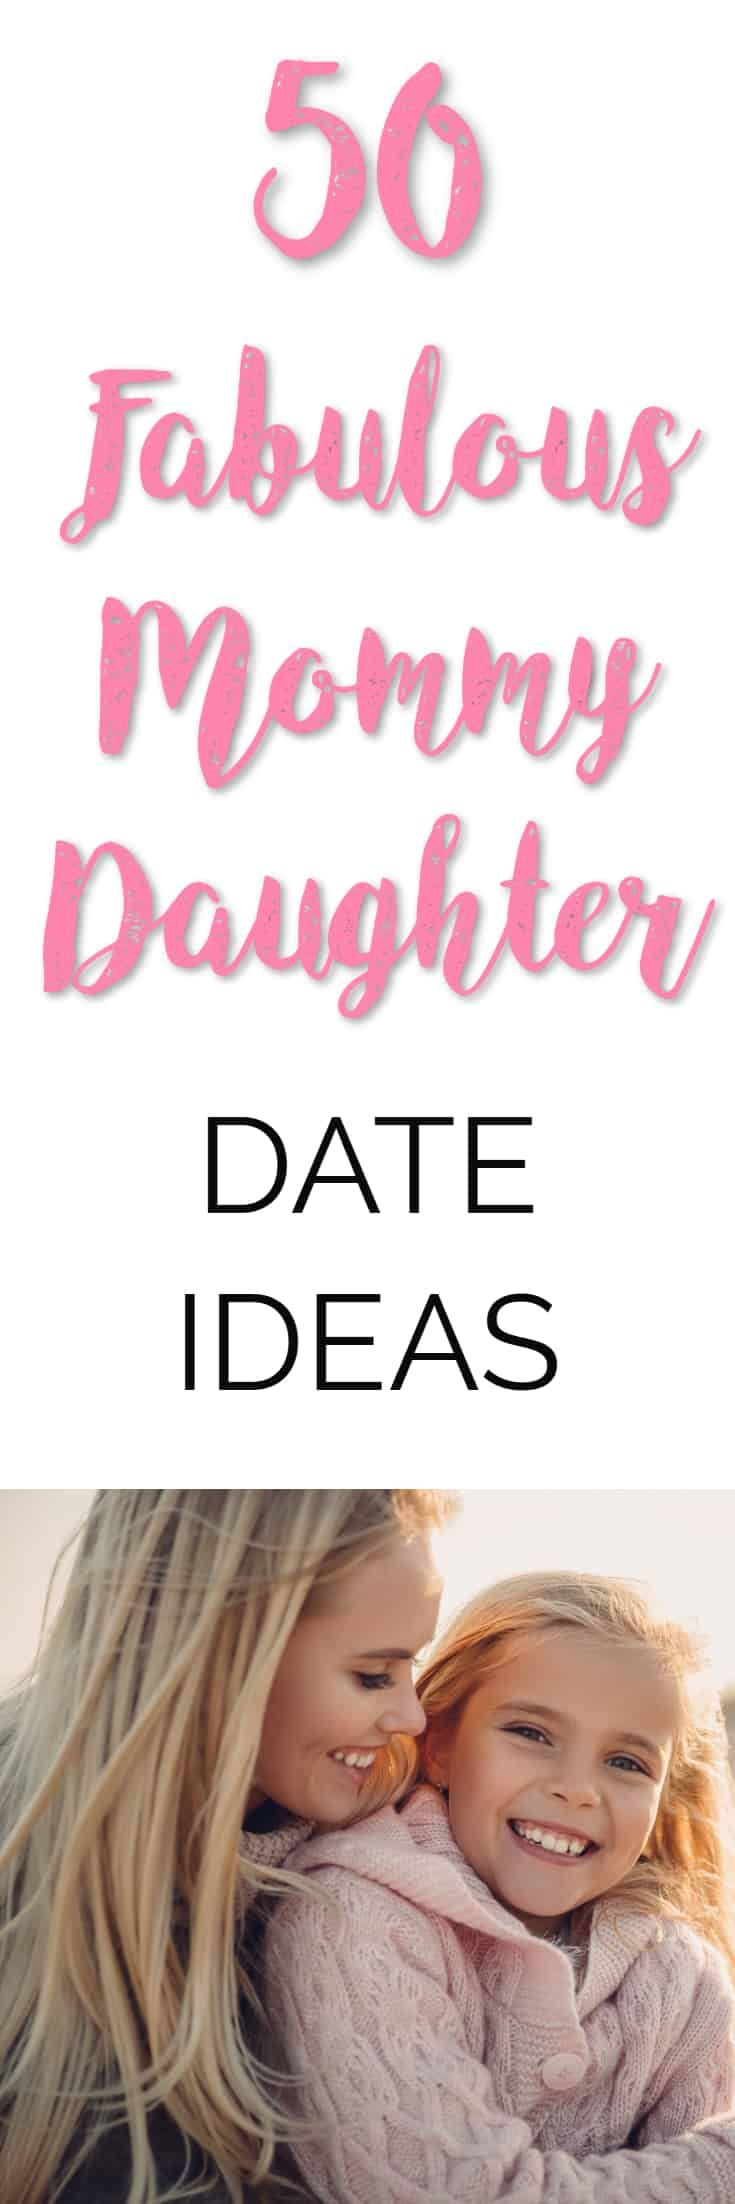 Photo of 50 Fabulous Mother Daughter Date Ideas – To Bond and Reconnect